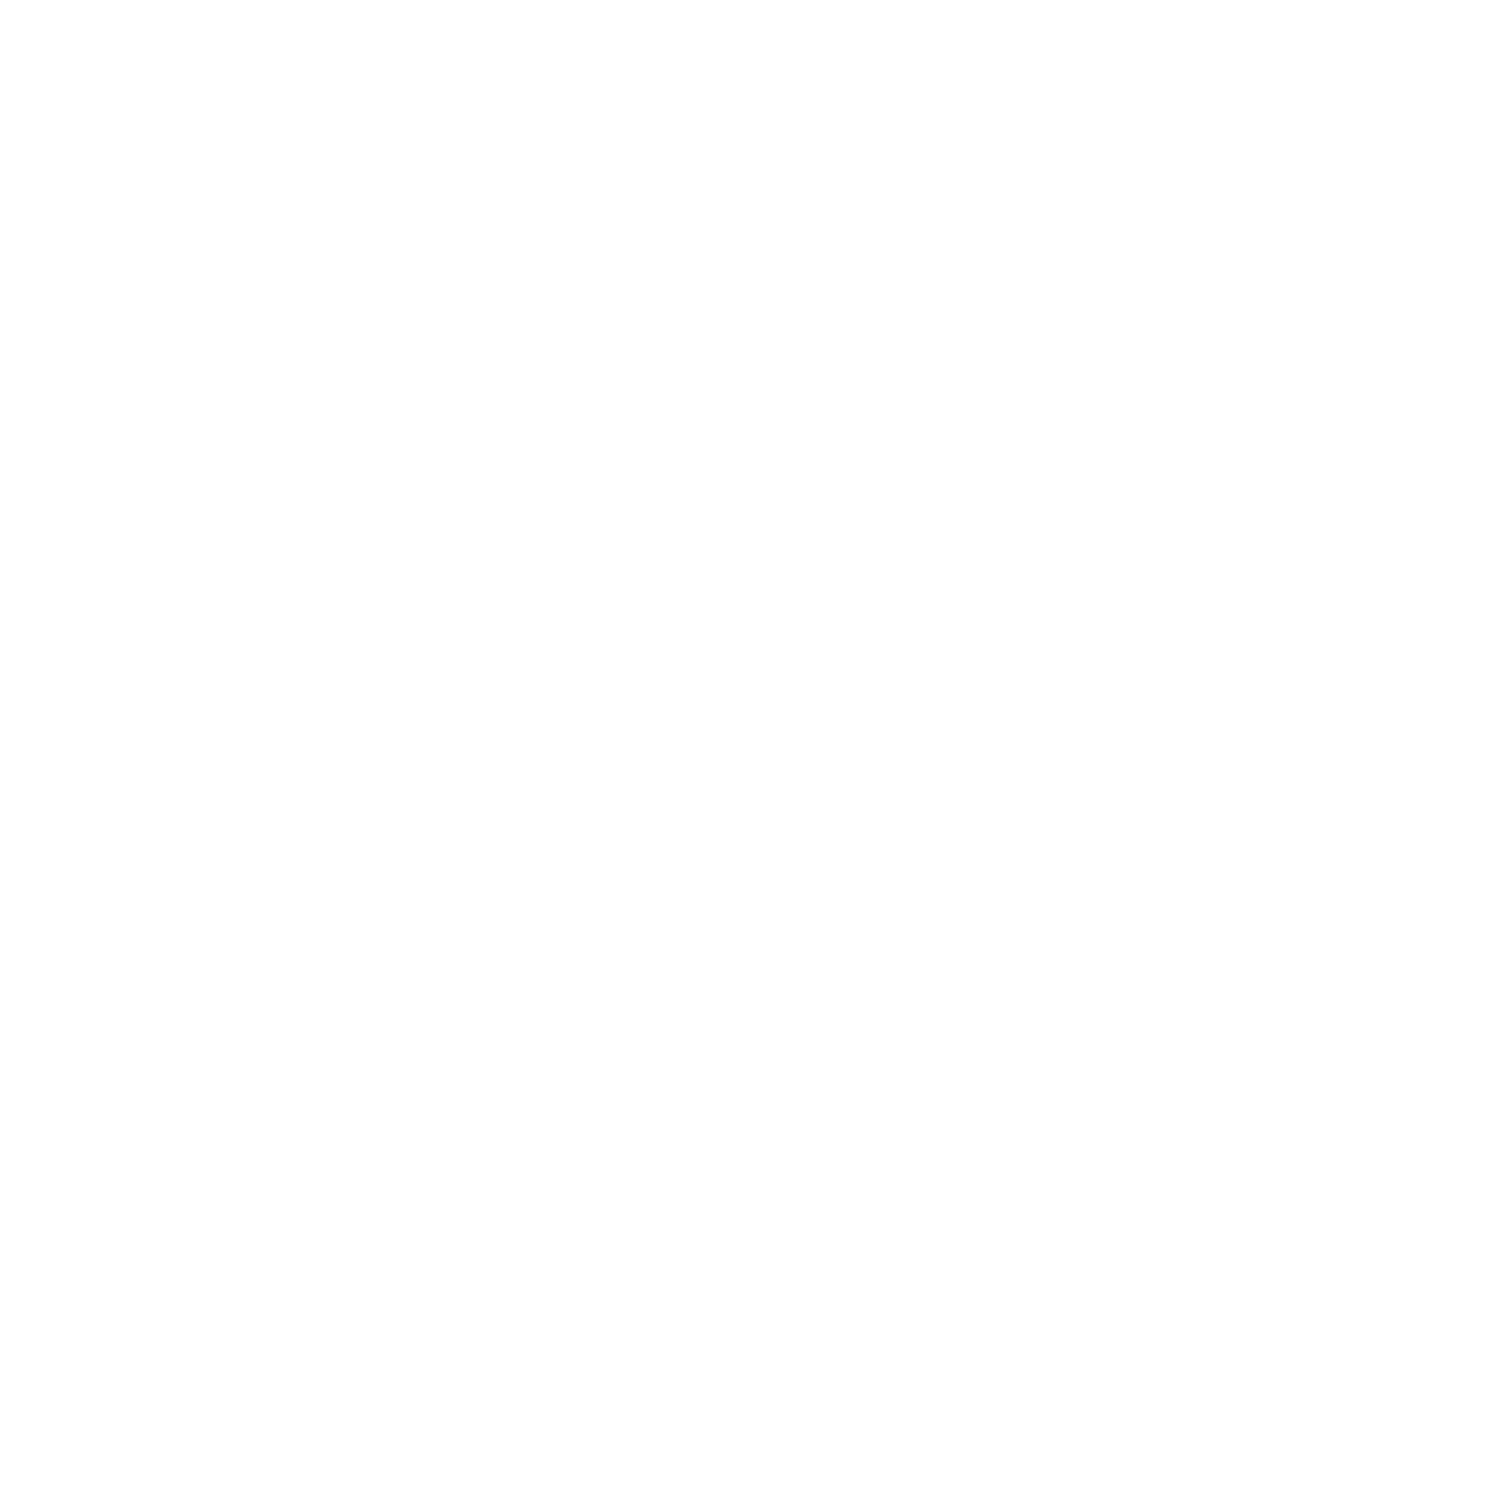 Satin Edge Photography